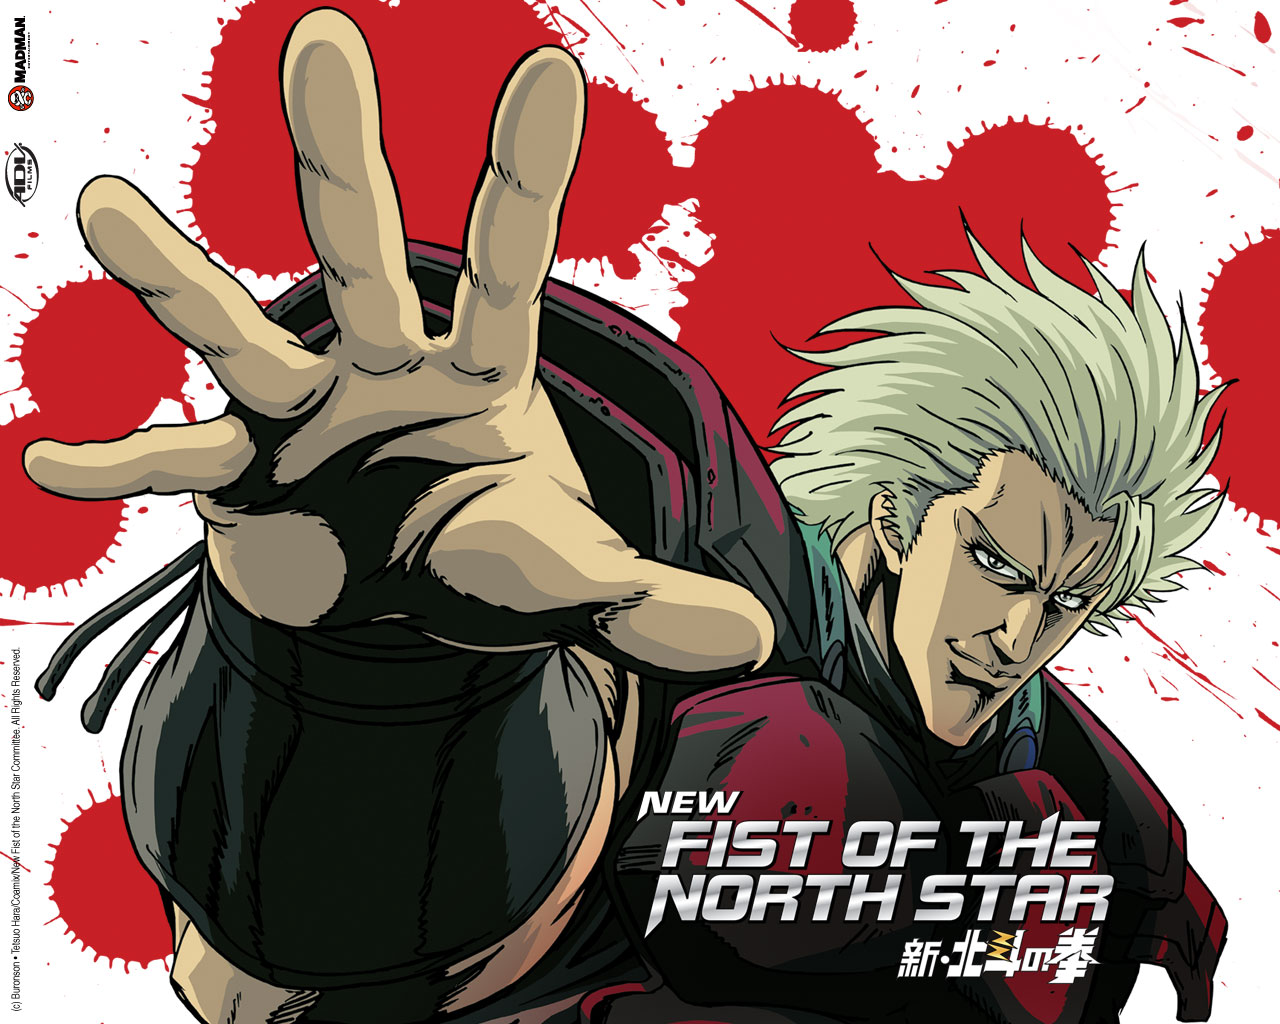 New Fist of the North Star   Fist Of The North Star Wallpaper 1280x1024